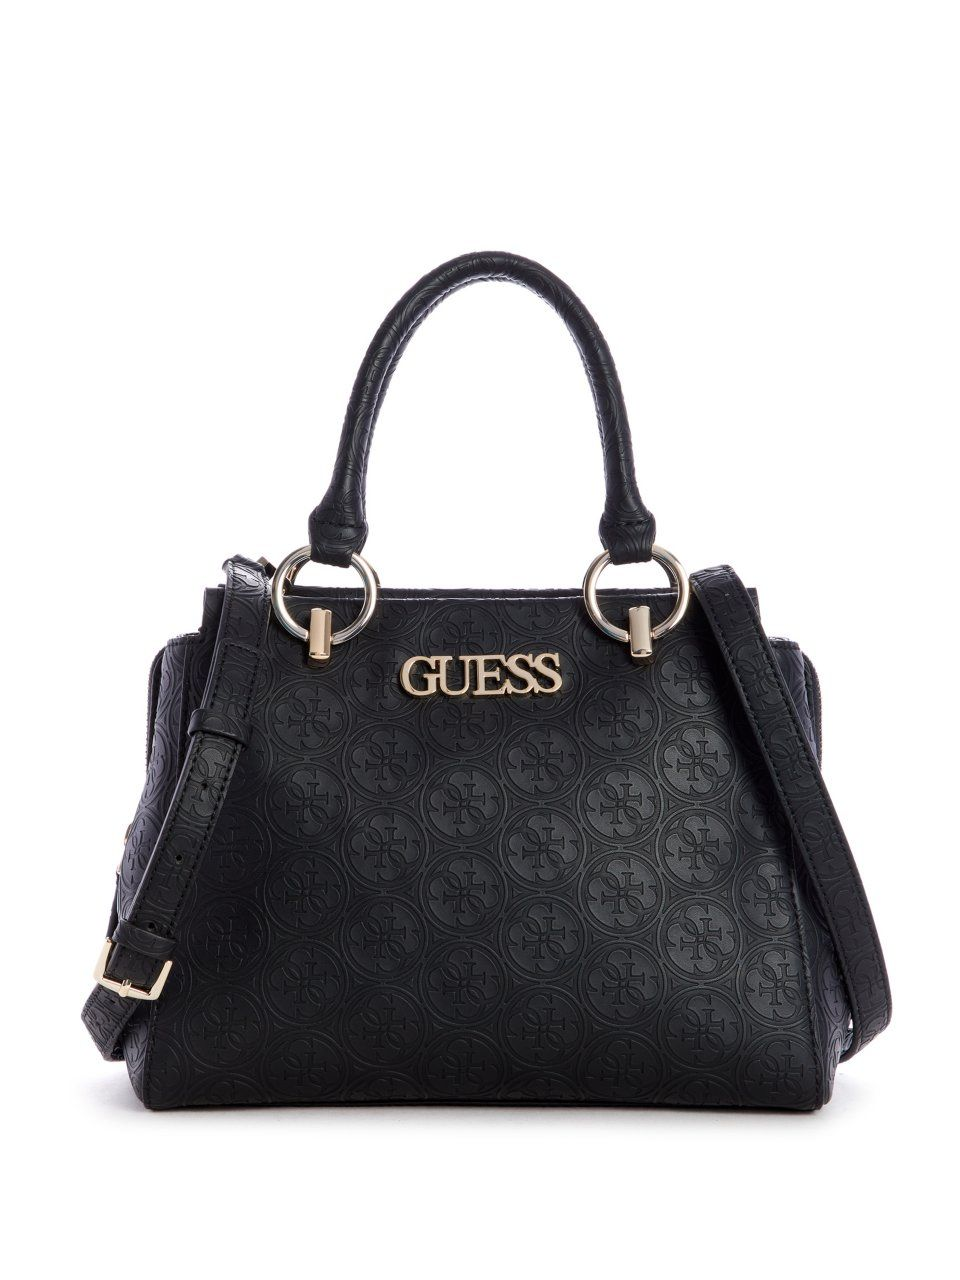 e1dbff1d45b Heritage Pop Girlfriend Satchel in 2019 | Products | Bags, Guess ...